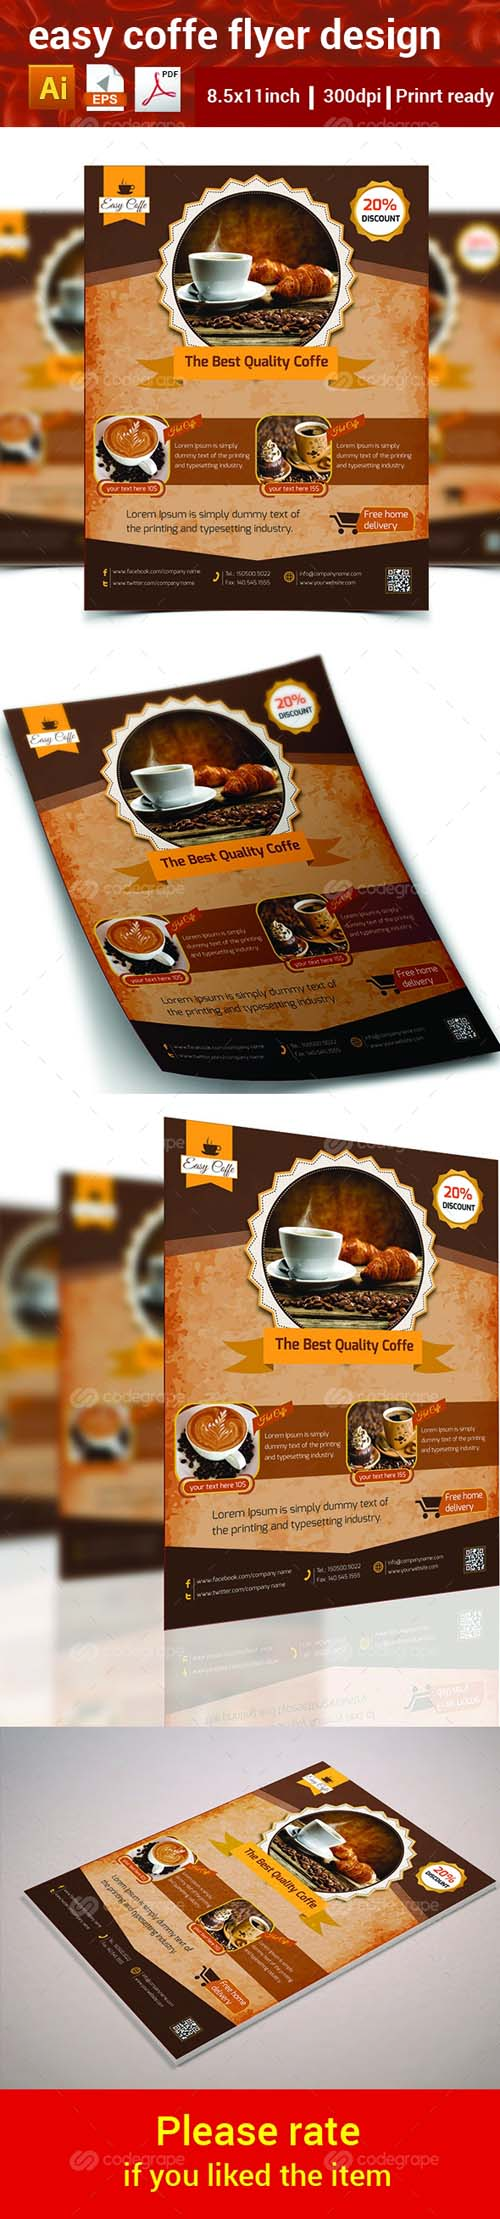 Easy Coffee Flyer